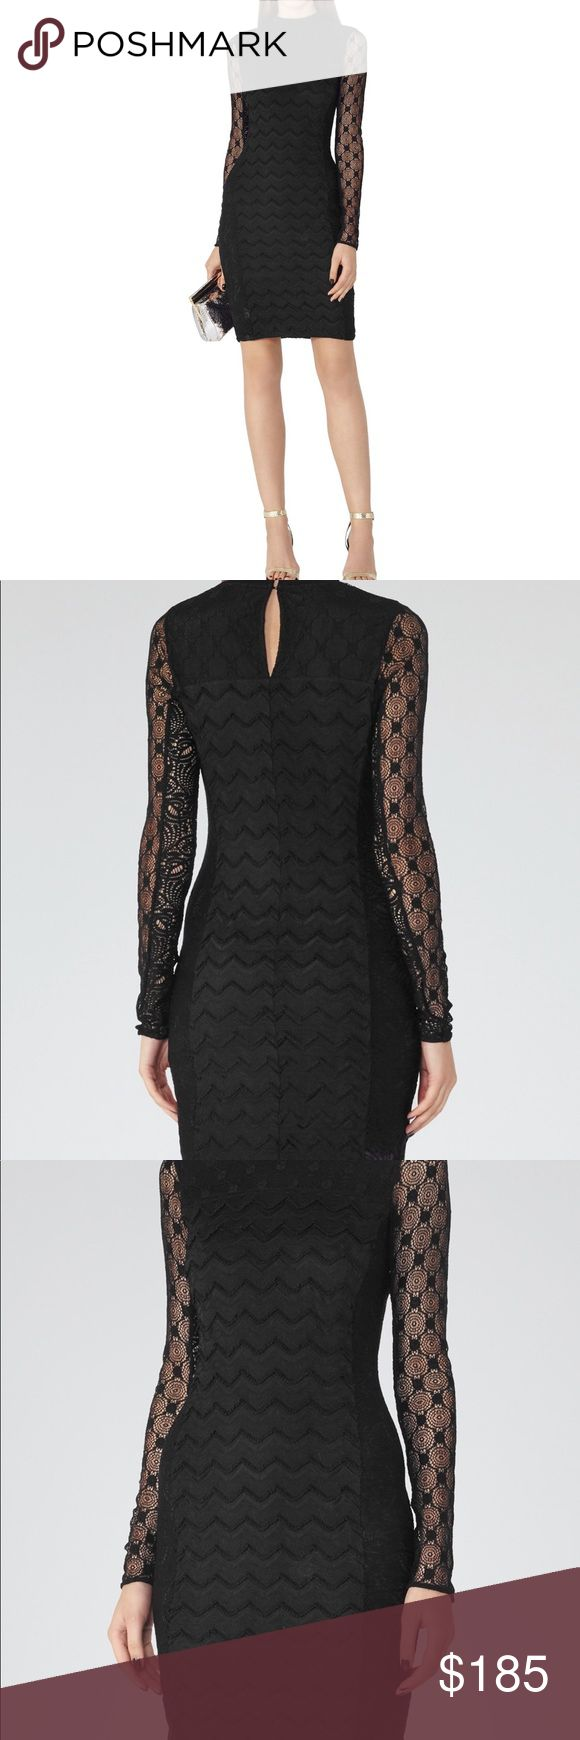 NWT Reiss Lara Lace Mix Dress Incredible Lace Arm Dress. New with tags. Authenticity Guaranteed. Reiss Dresses